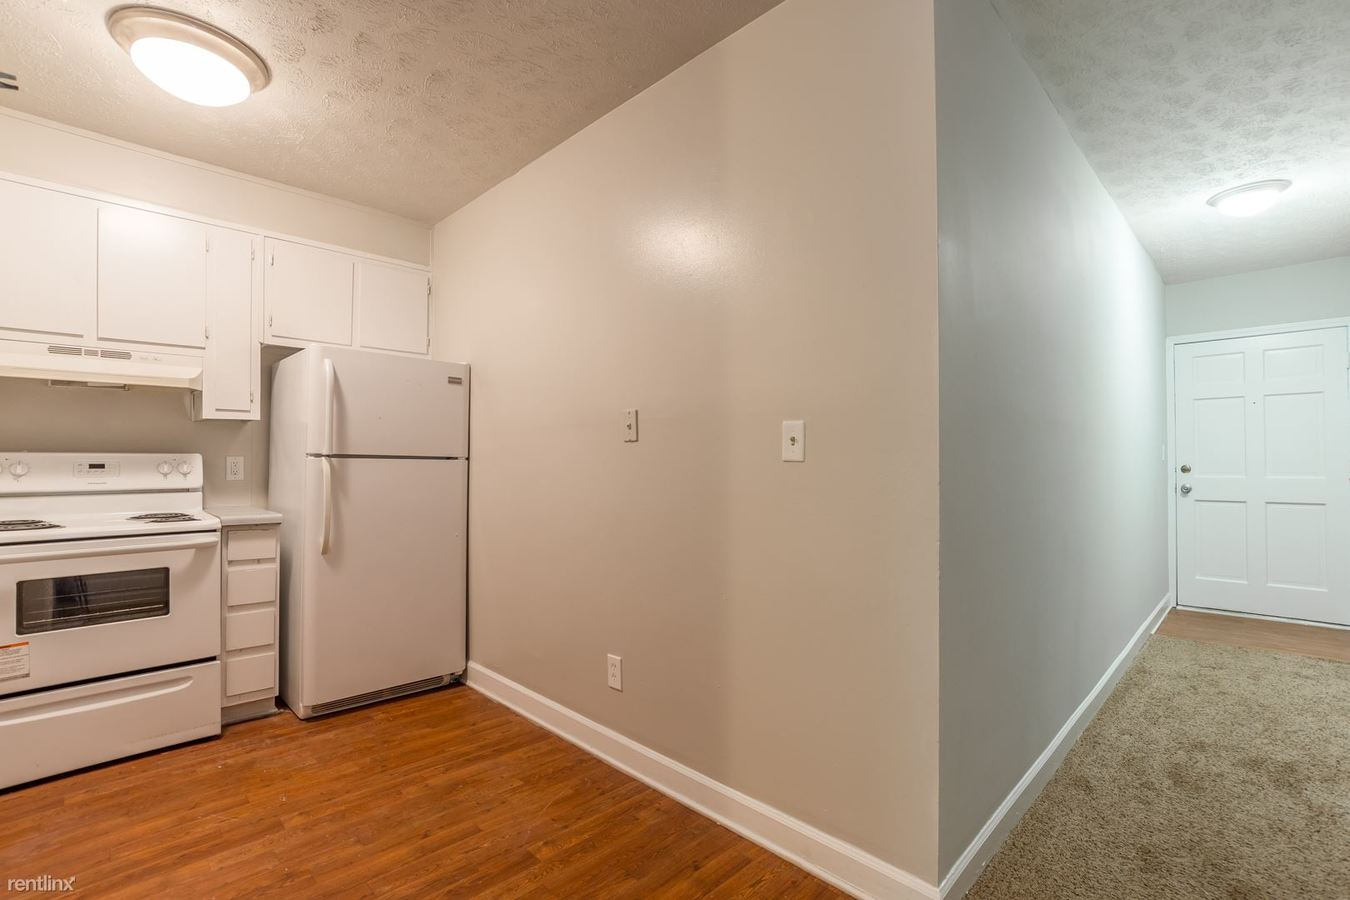 1 Bedroom 1 Bathroom Apartment for rent at The Pines At Lawrenceville Apartments in Decatur, GA